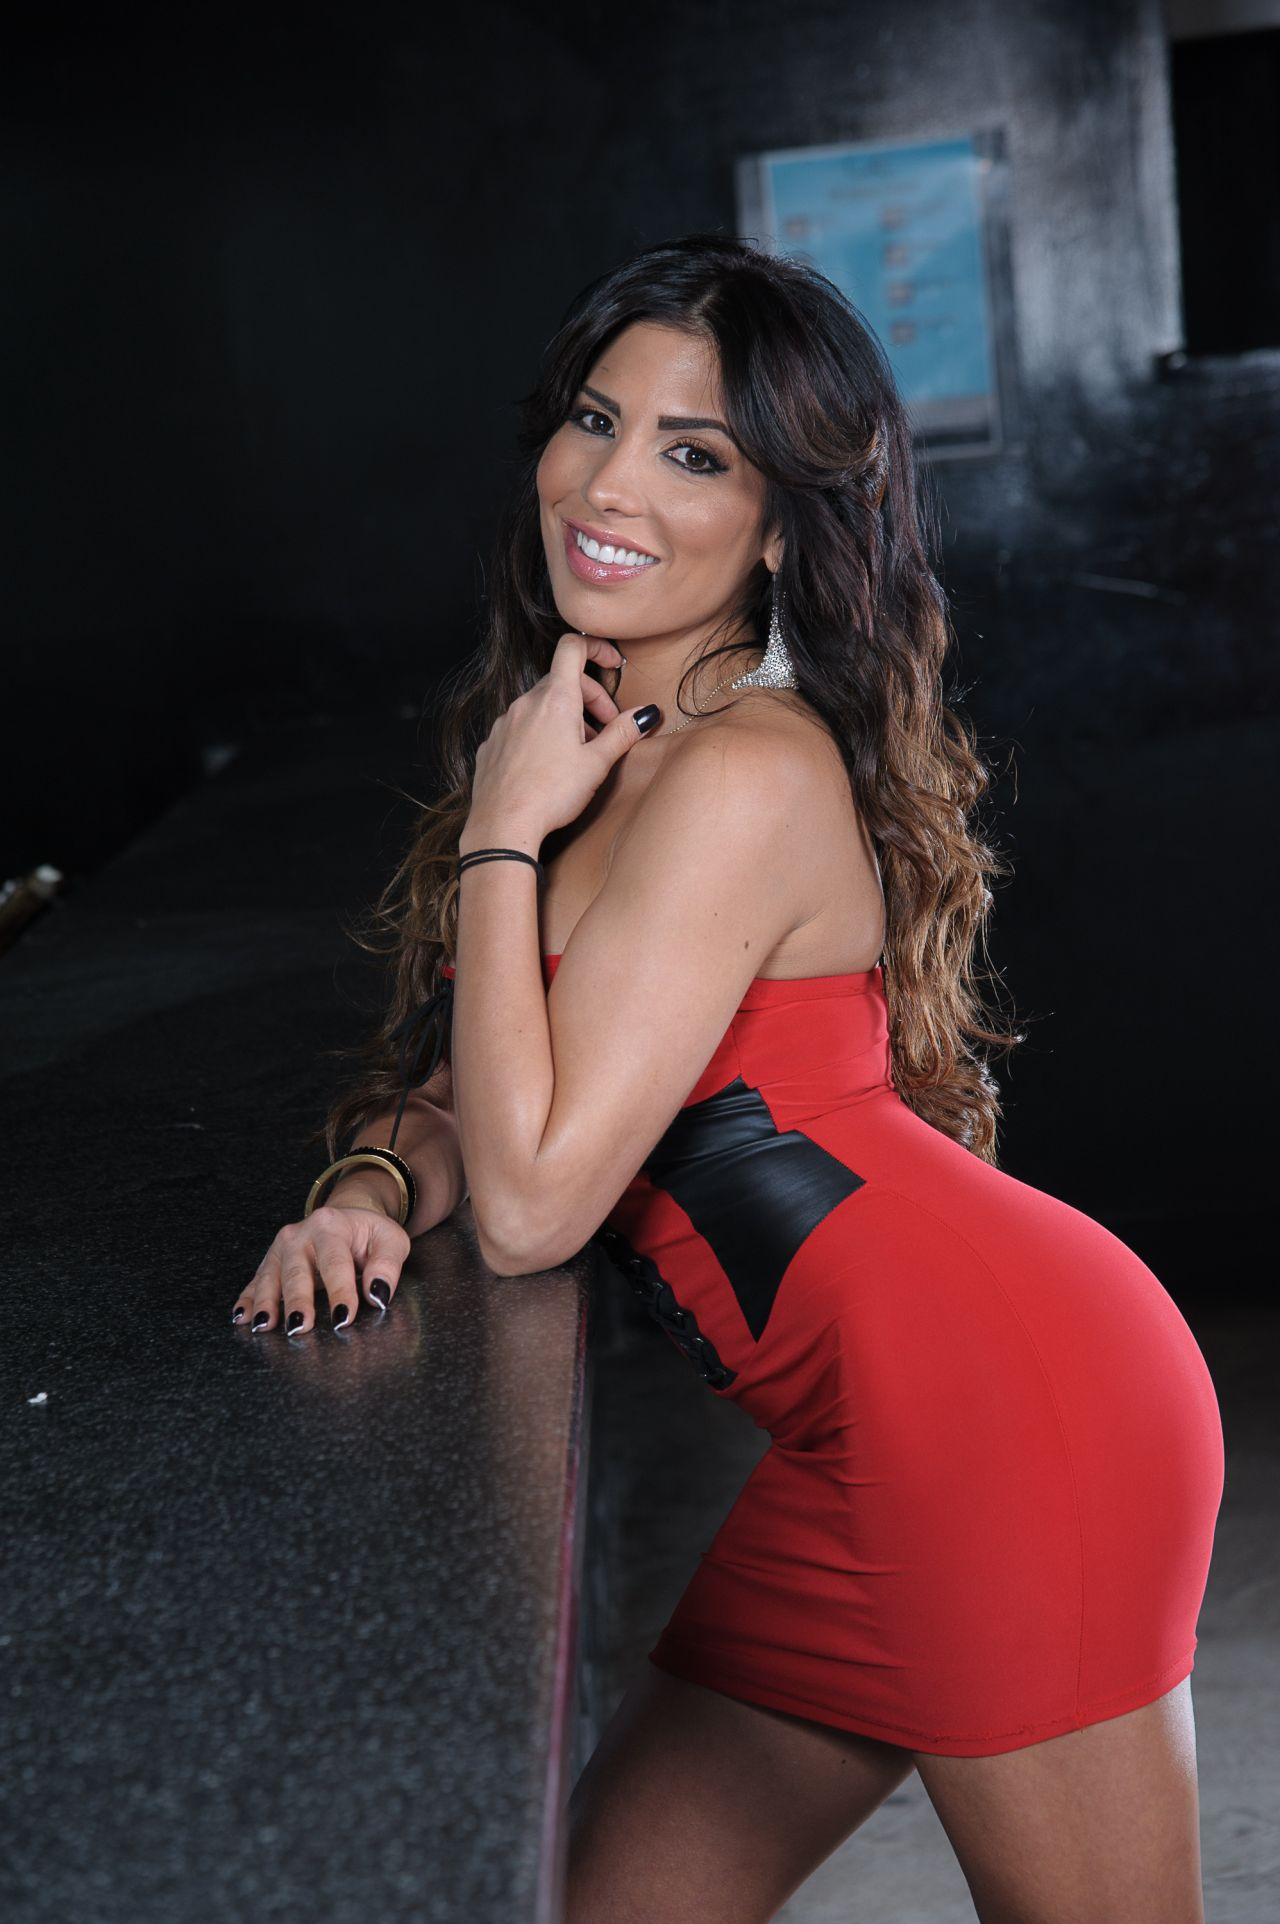 Natalie Guercio Mob Wife Photoshoot At Lit Ultrabar In